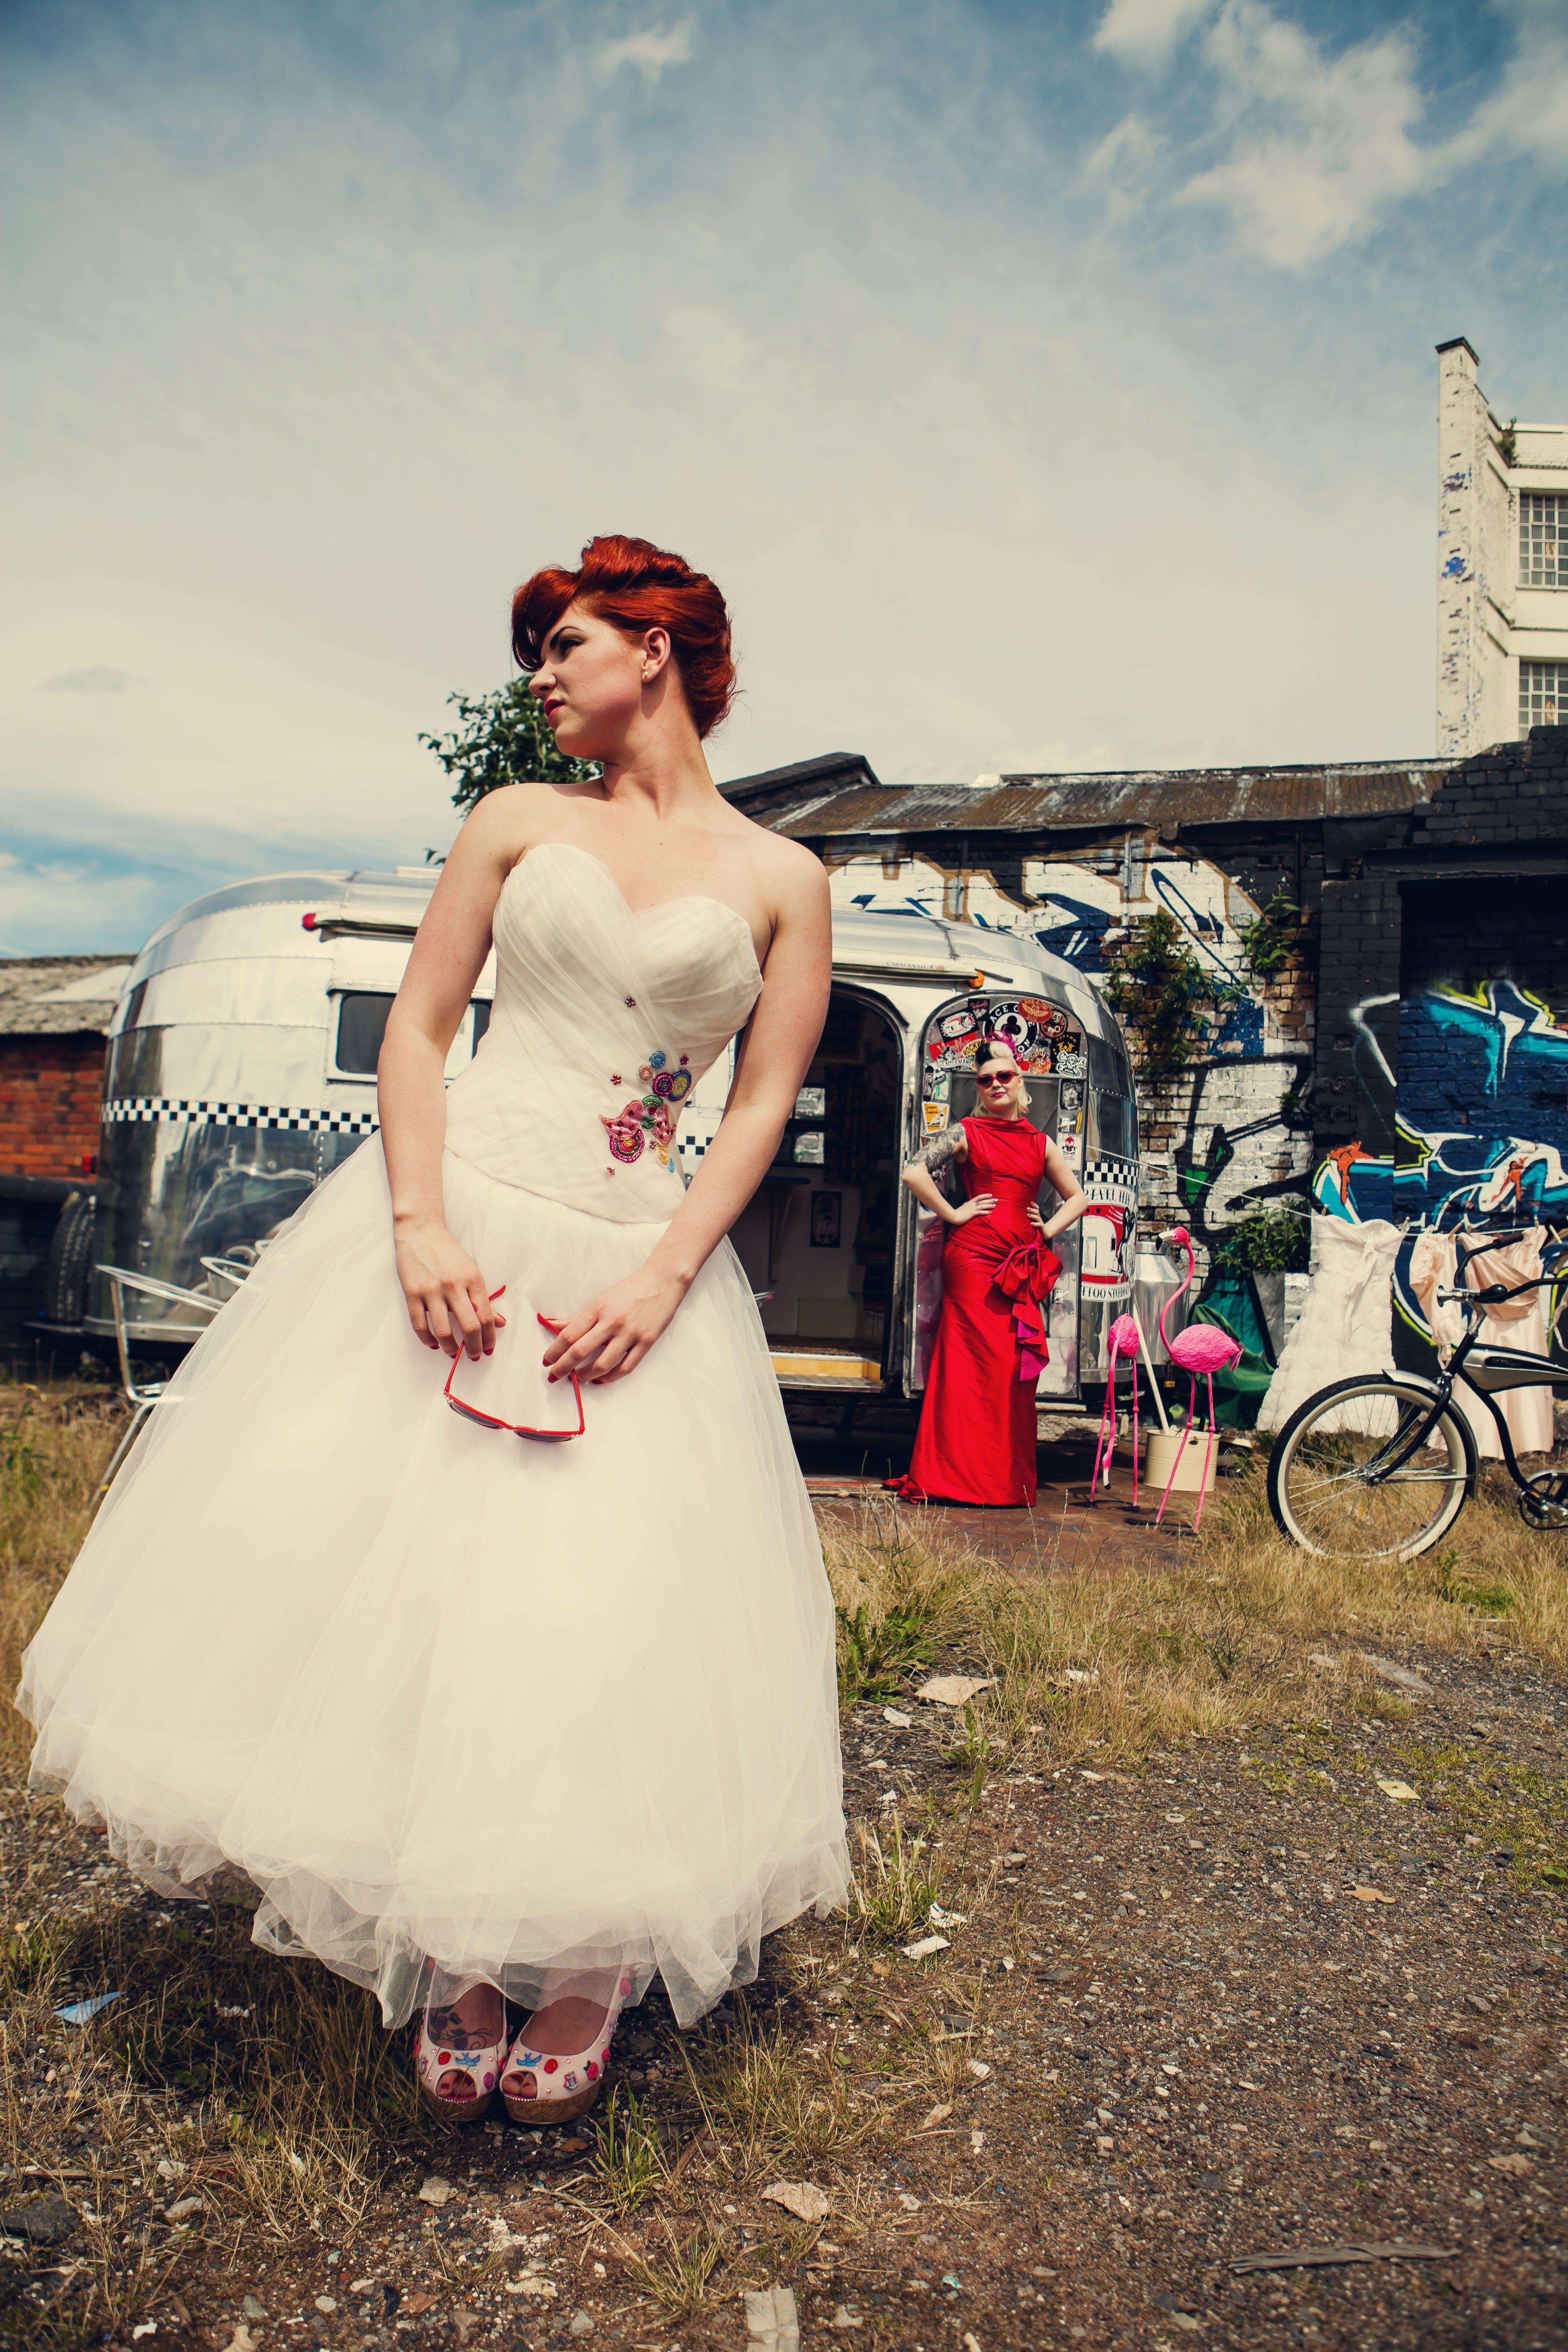 Rockabilly wedding dresses  s wedding dress  Google Search  Vintage dreams and fairytales